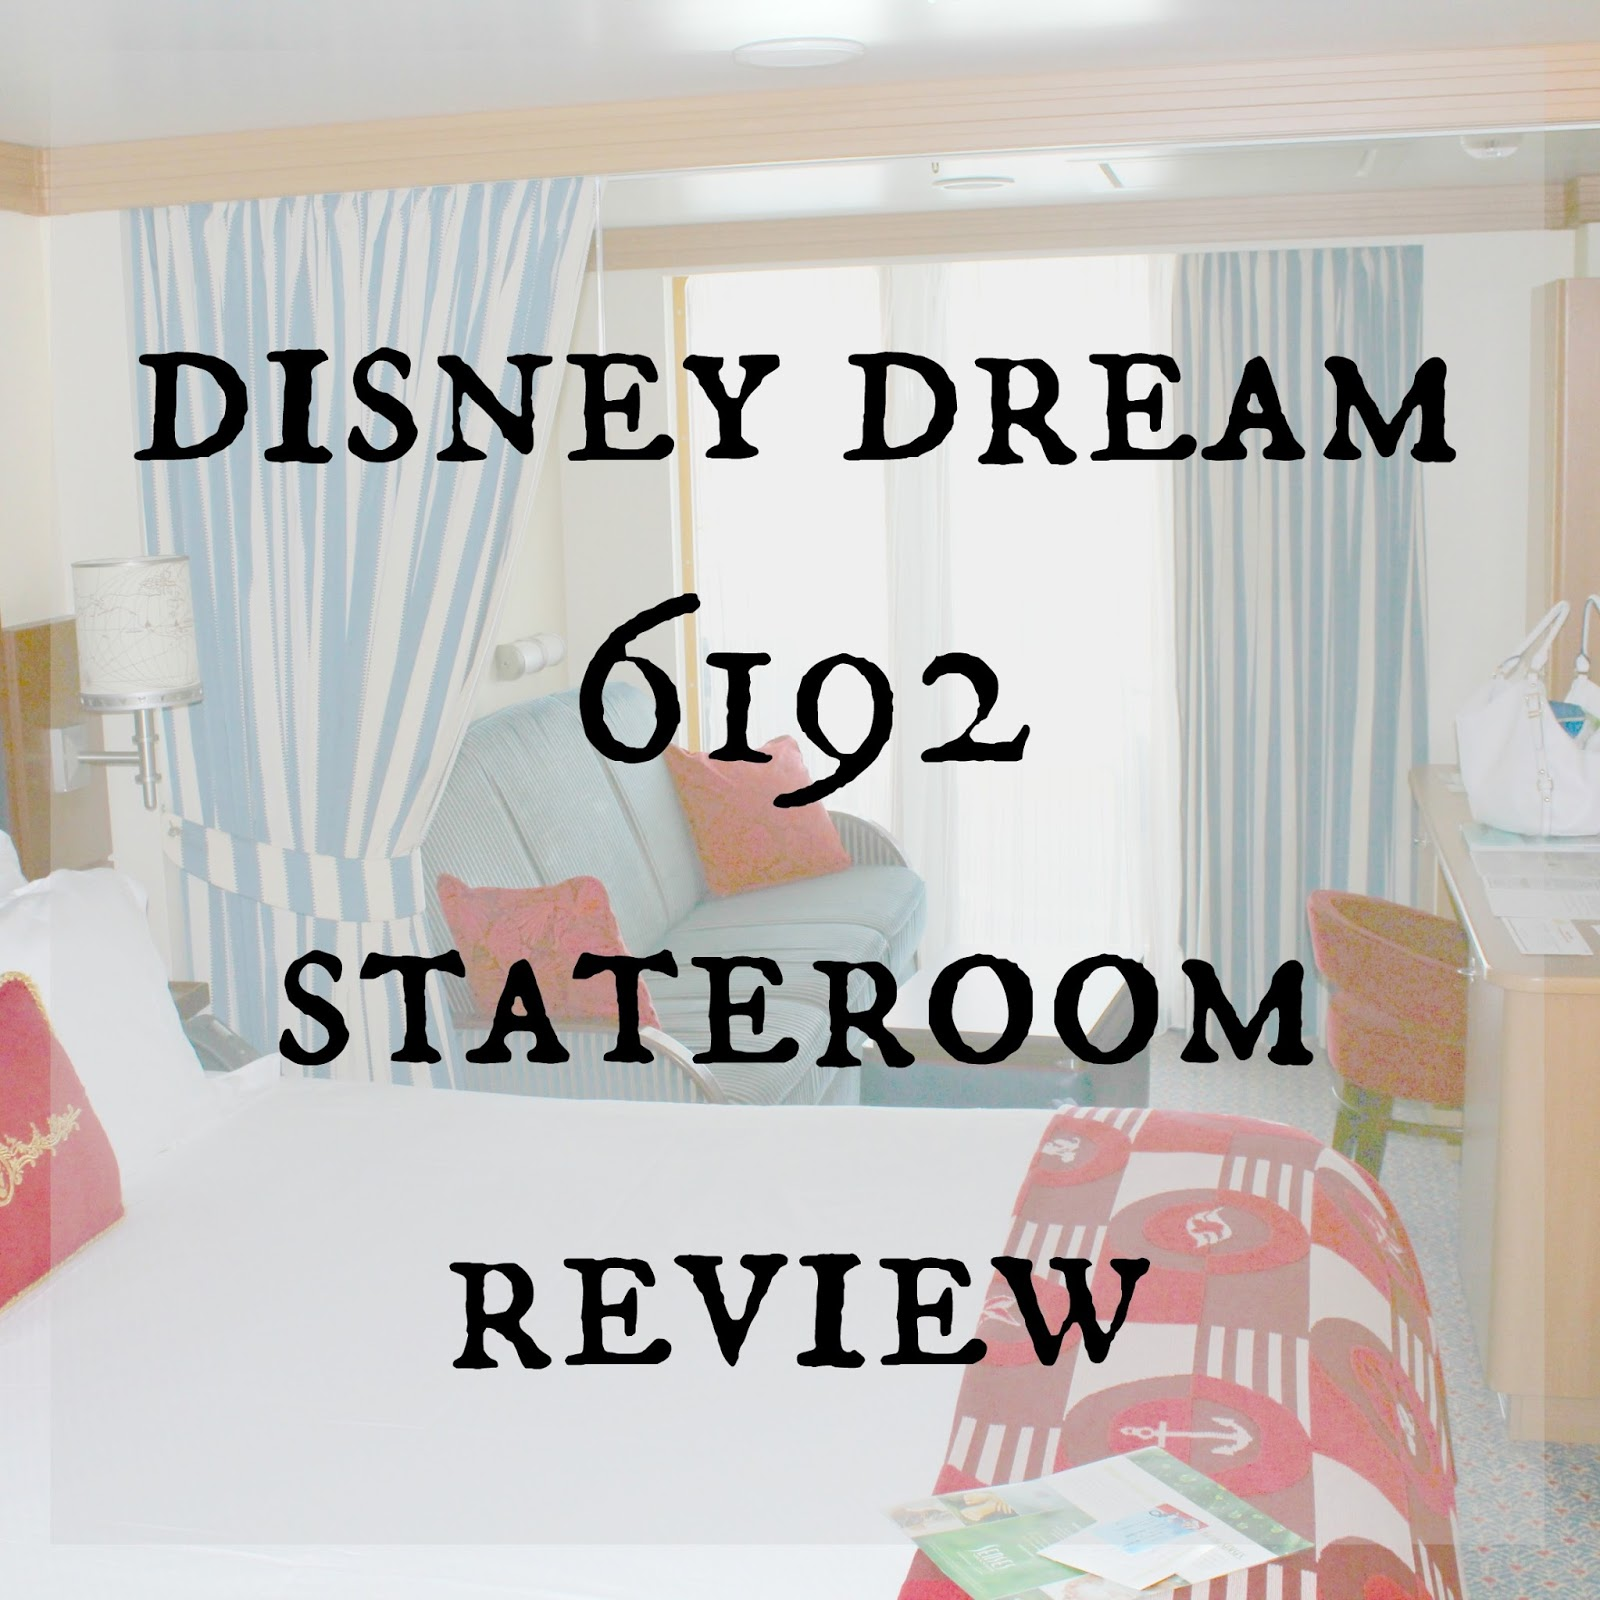 Disney Dream Sofa Bed Modern Leather 6192 Stateroom Review Caravan Sonnet Today I Am So Excited To Share About Our Because It Was Amazing Y All Seriously Every Time That Cruise In The Future On